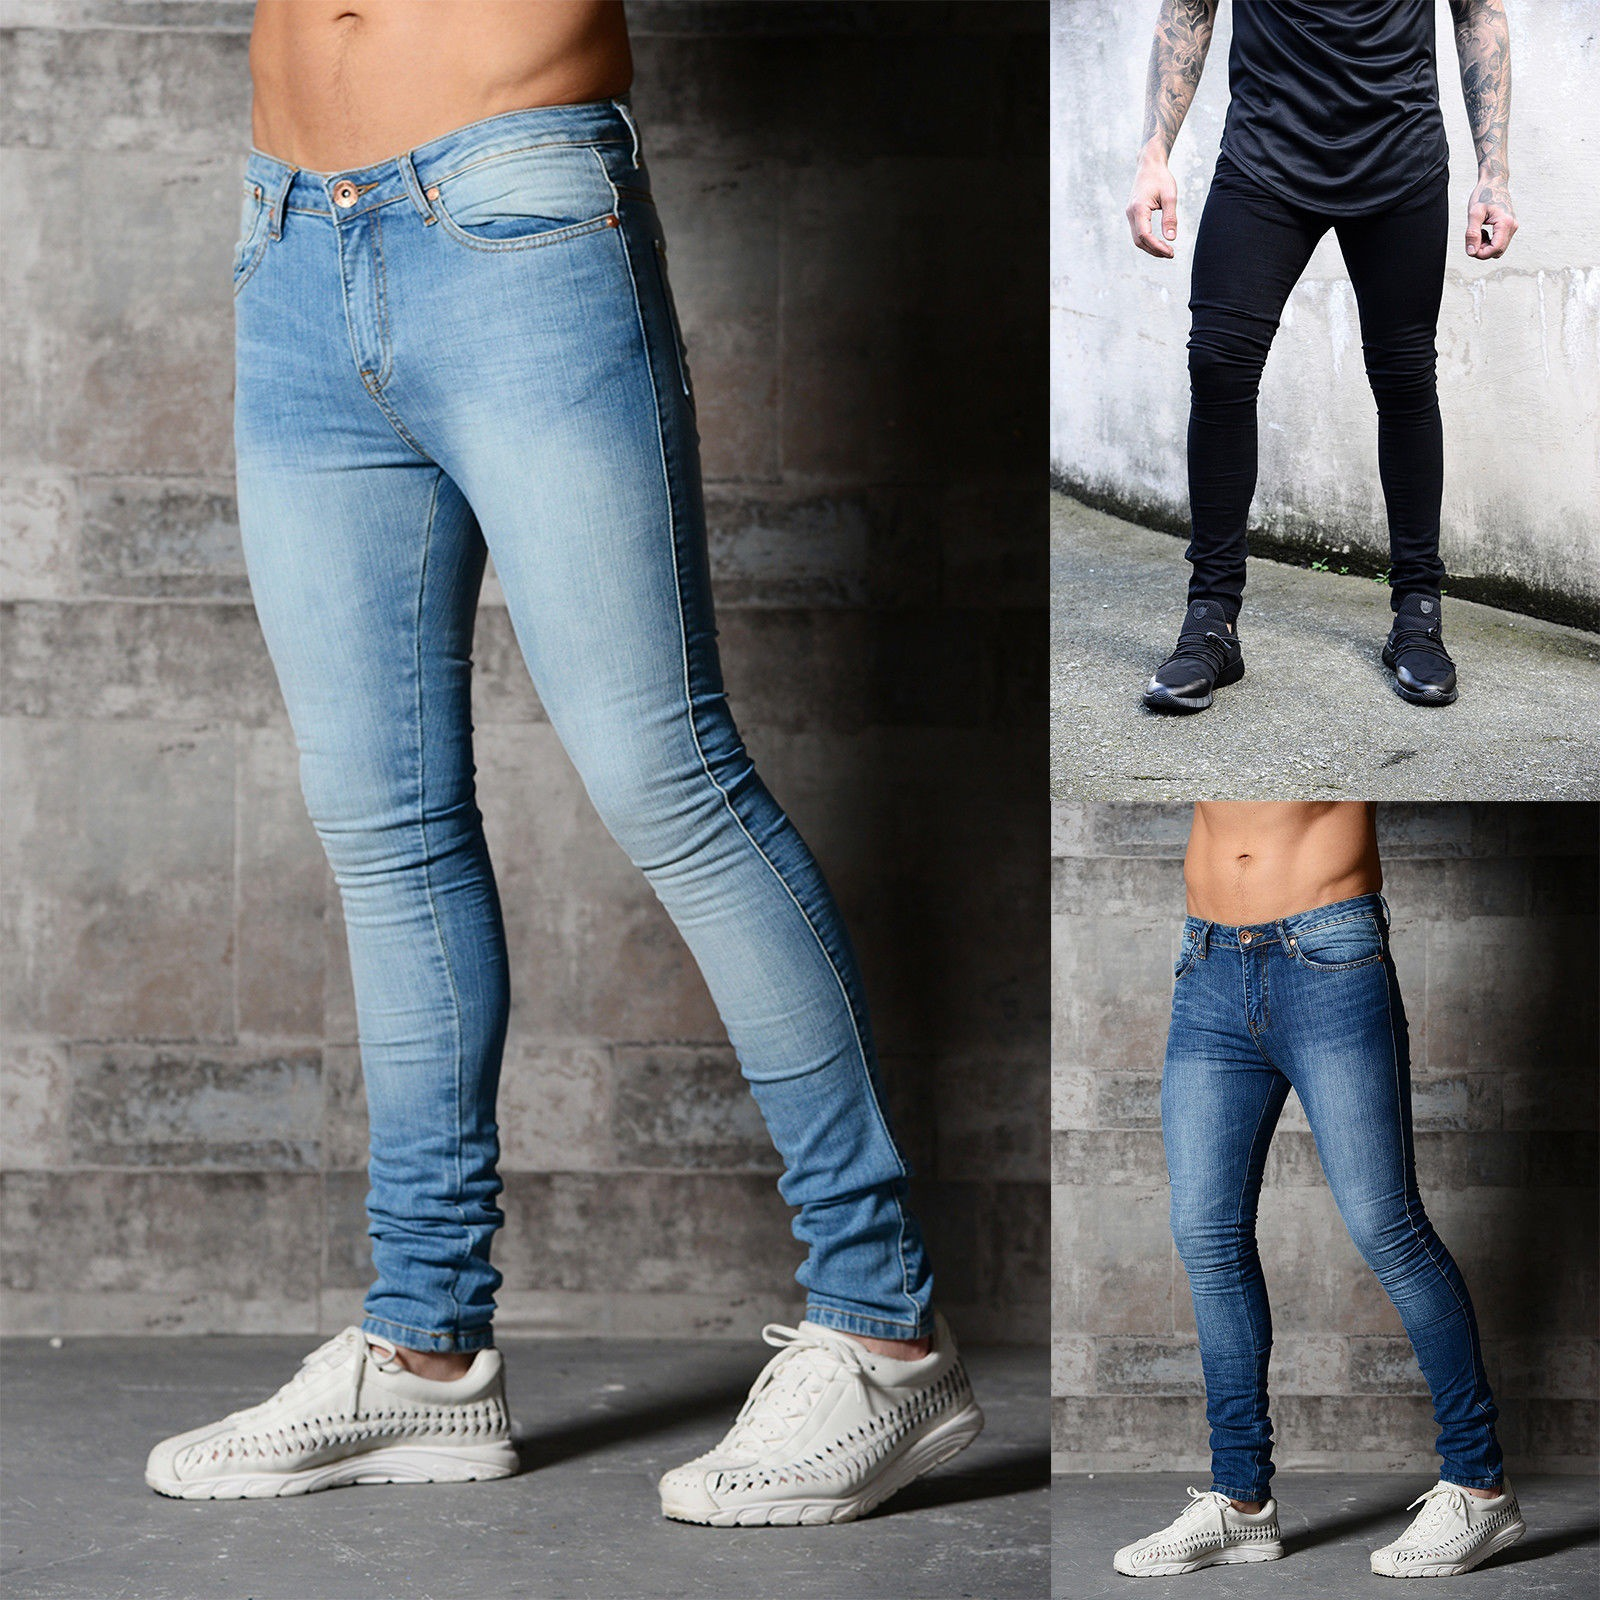 Mens brand Skinny jeans Pant Casual Trousers 2019 denim black jeans homme stretch pencil Pants Plus Size streetwear 3XL image